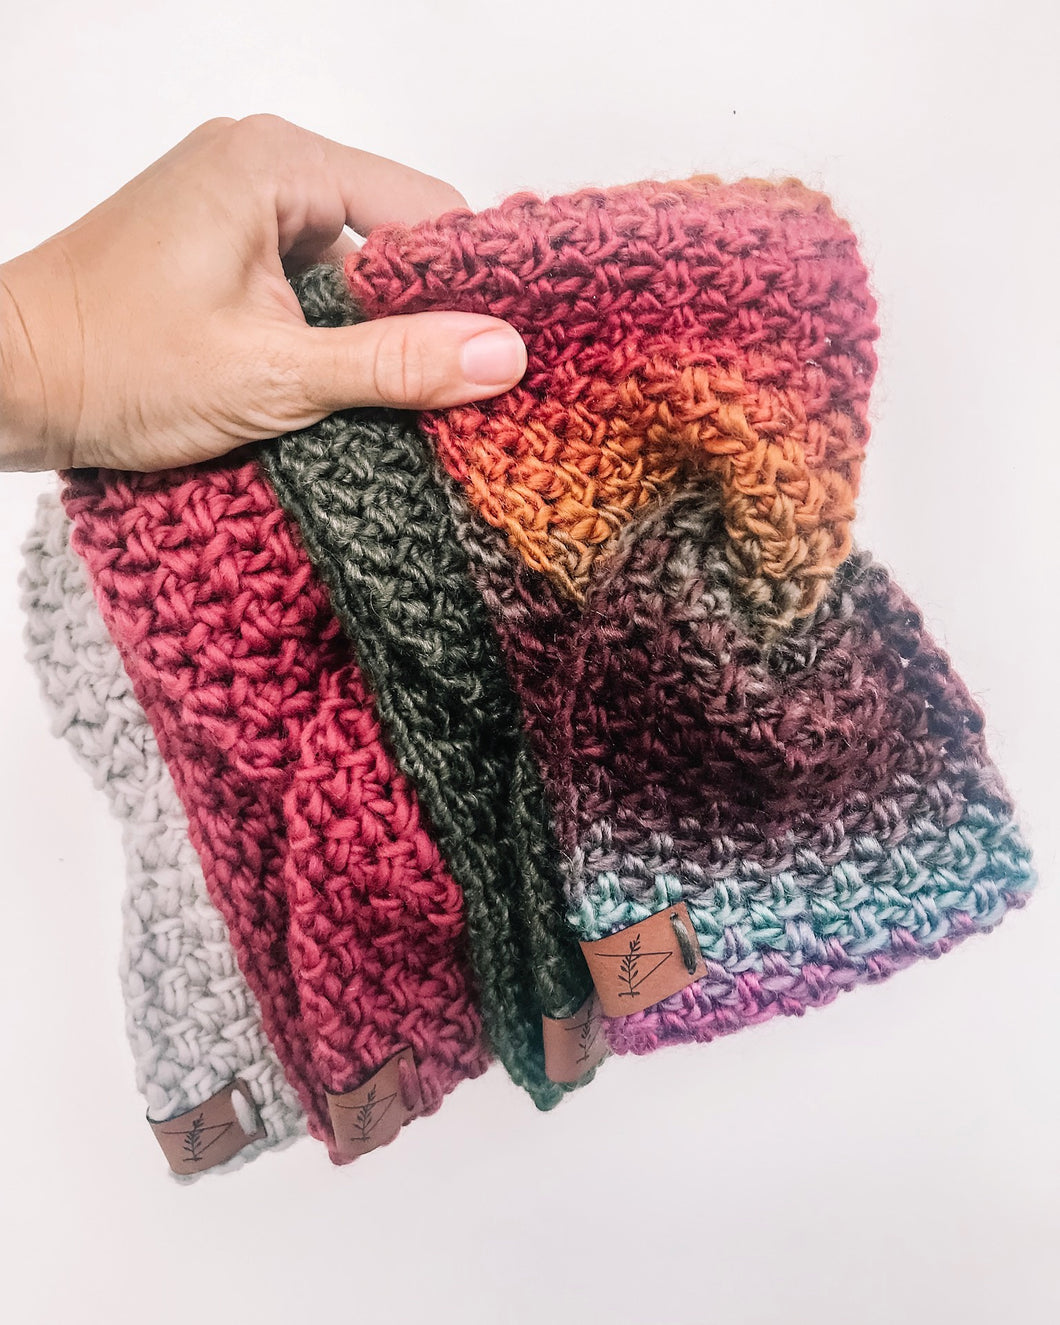 Crochet Pattern: Woven Headwarmer Pattern